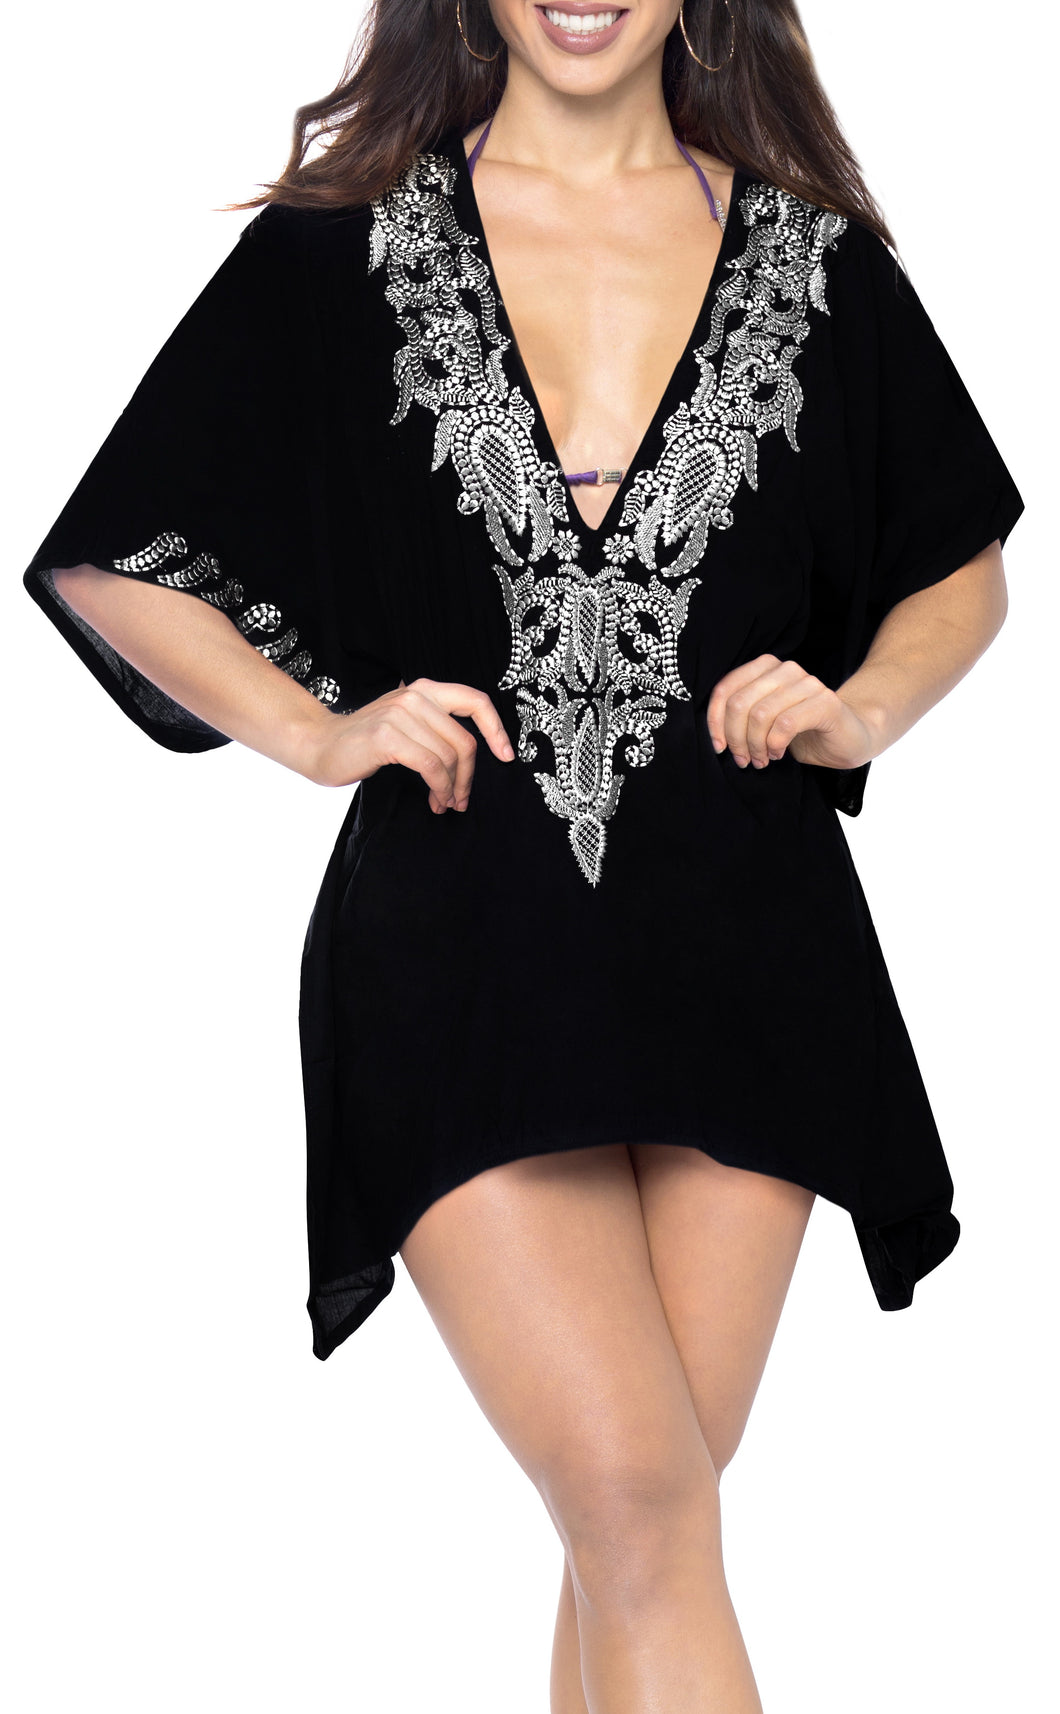 la-leela-bikni-swimwear-rayon-solid-cover-up-blouse-women-osfm-10-16-m-1x-black_2749